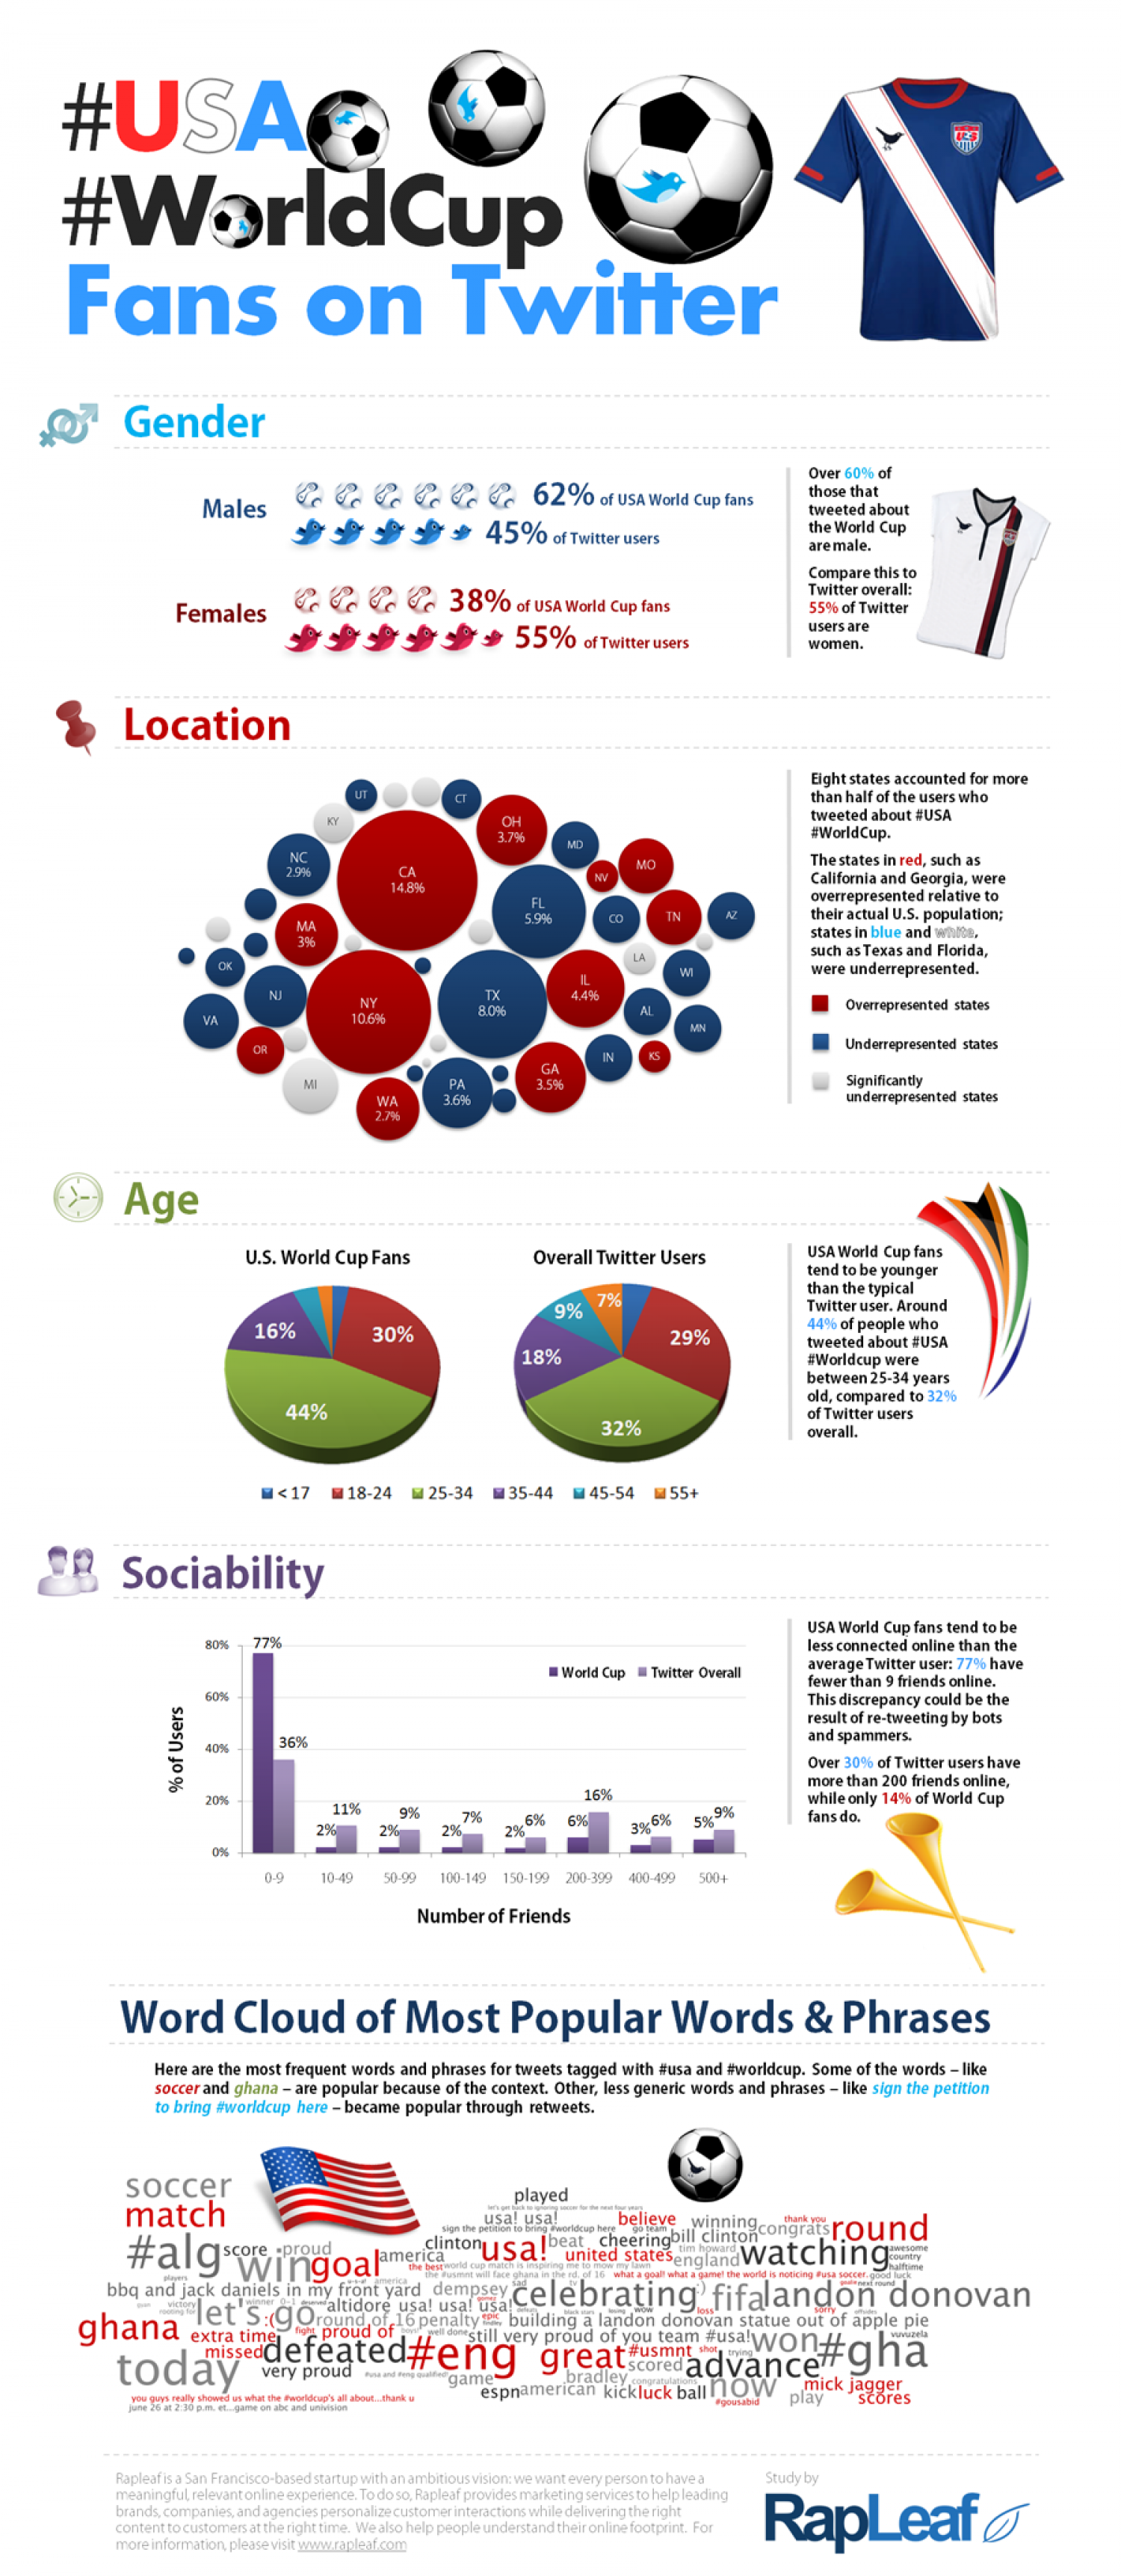 USA Worldcup fans on twitter Infographic